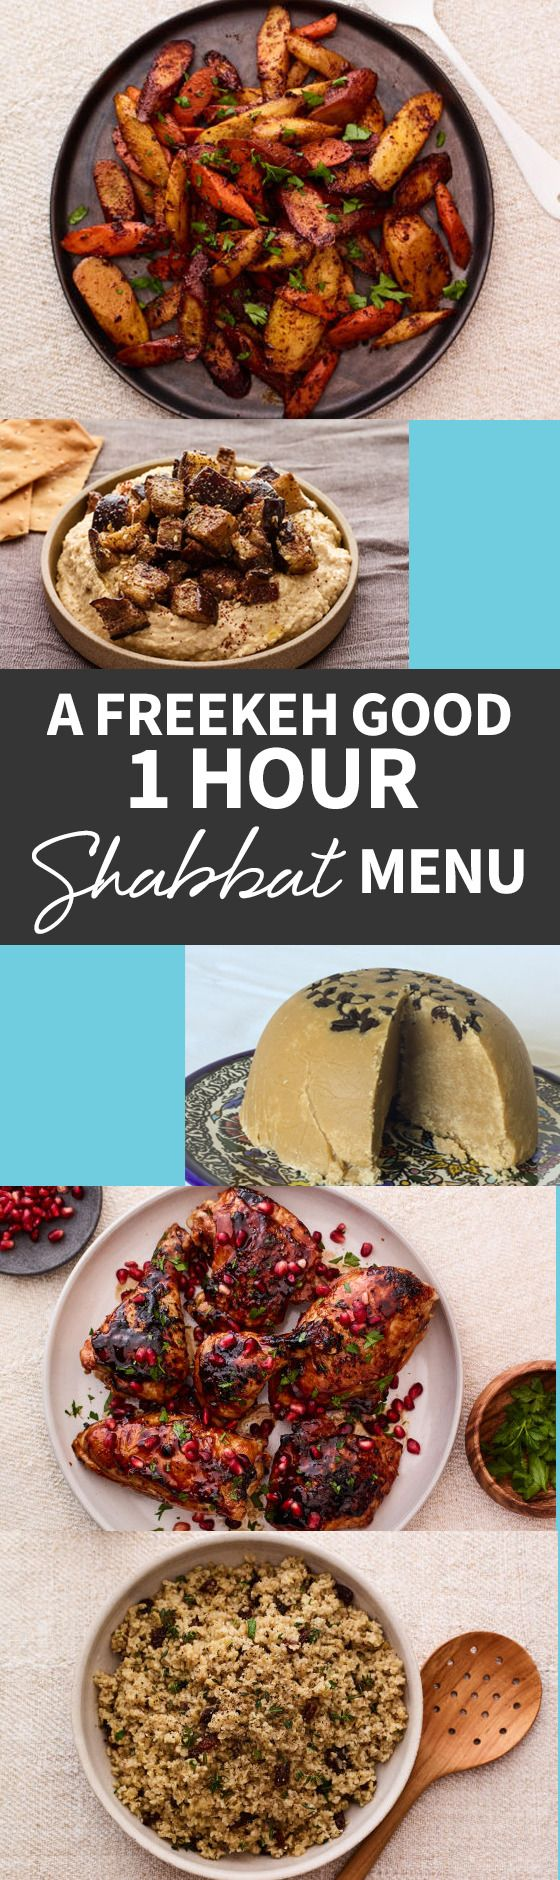 This Freekeh Good 1 Hour Shabbat Menu can be prepared even if your crunched for time! Find out how when you follow this article full of amazing recipes! http://www.joyofkosher.com/2016/12/a-freekeh-good-1-hour-shabbat-menu/